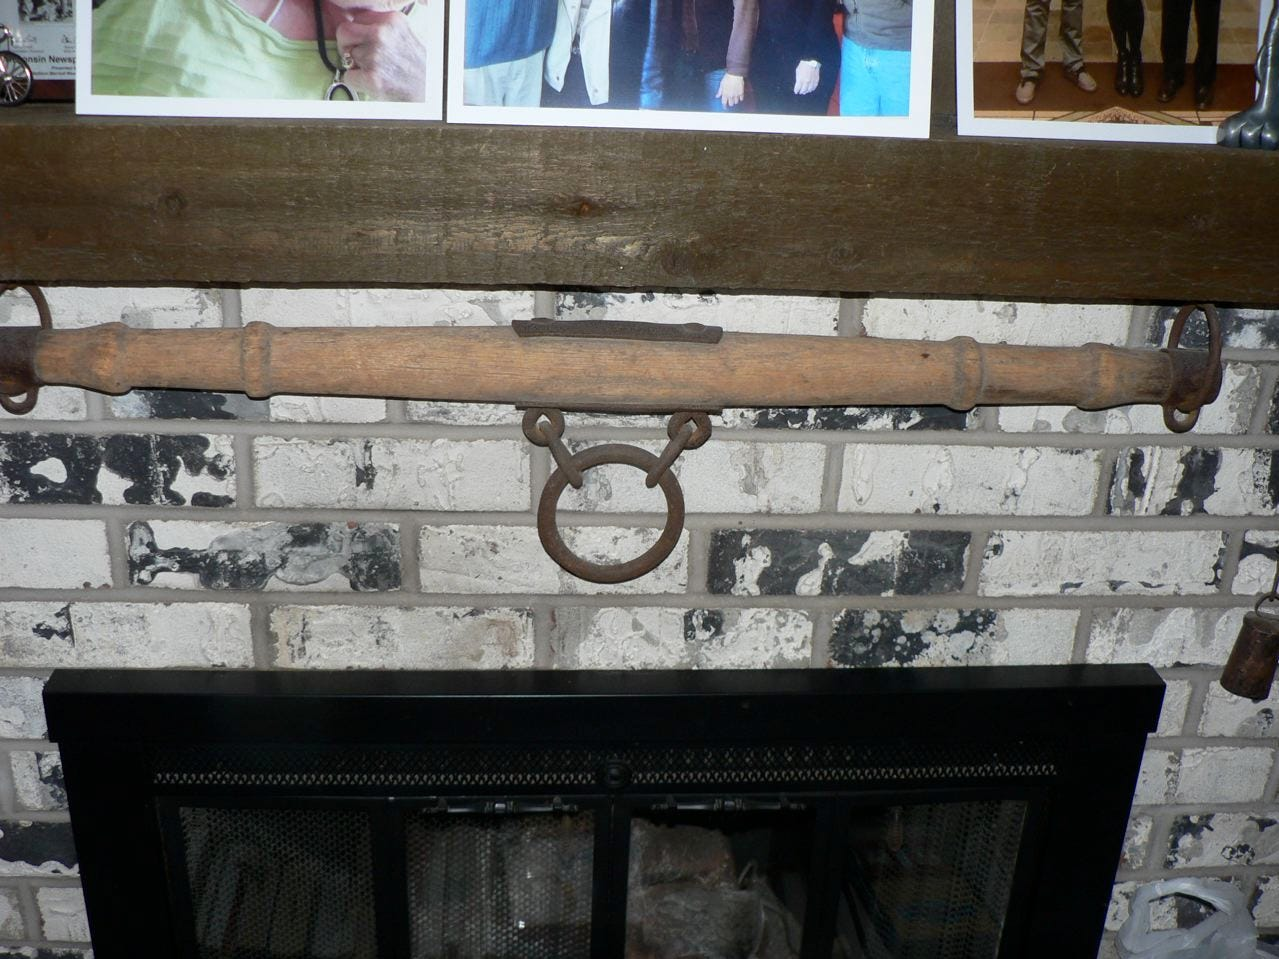 A neck yoke used by a team of horses to hold the wagon tongue. I kept it mounted on the fireplace as a souvenir of my youth.